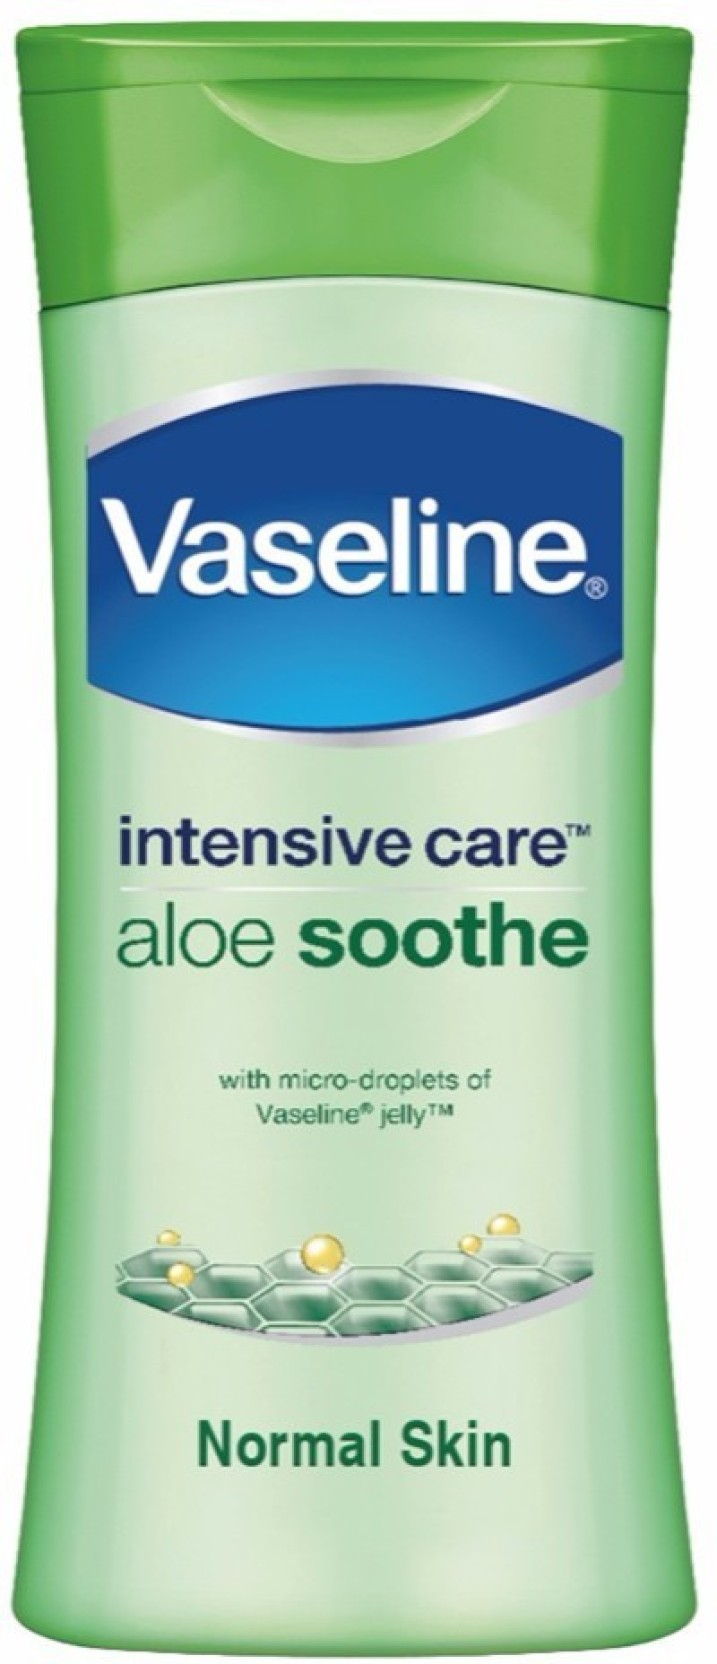 Vaseline Intensive Care Aloe Soothe Body Lotion Price In India Healthy White Perfect 10 200ml Twin Pack Add To Basket